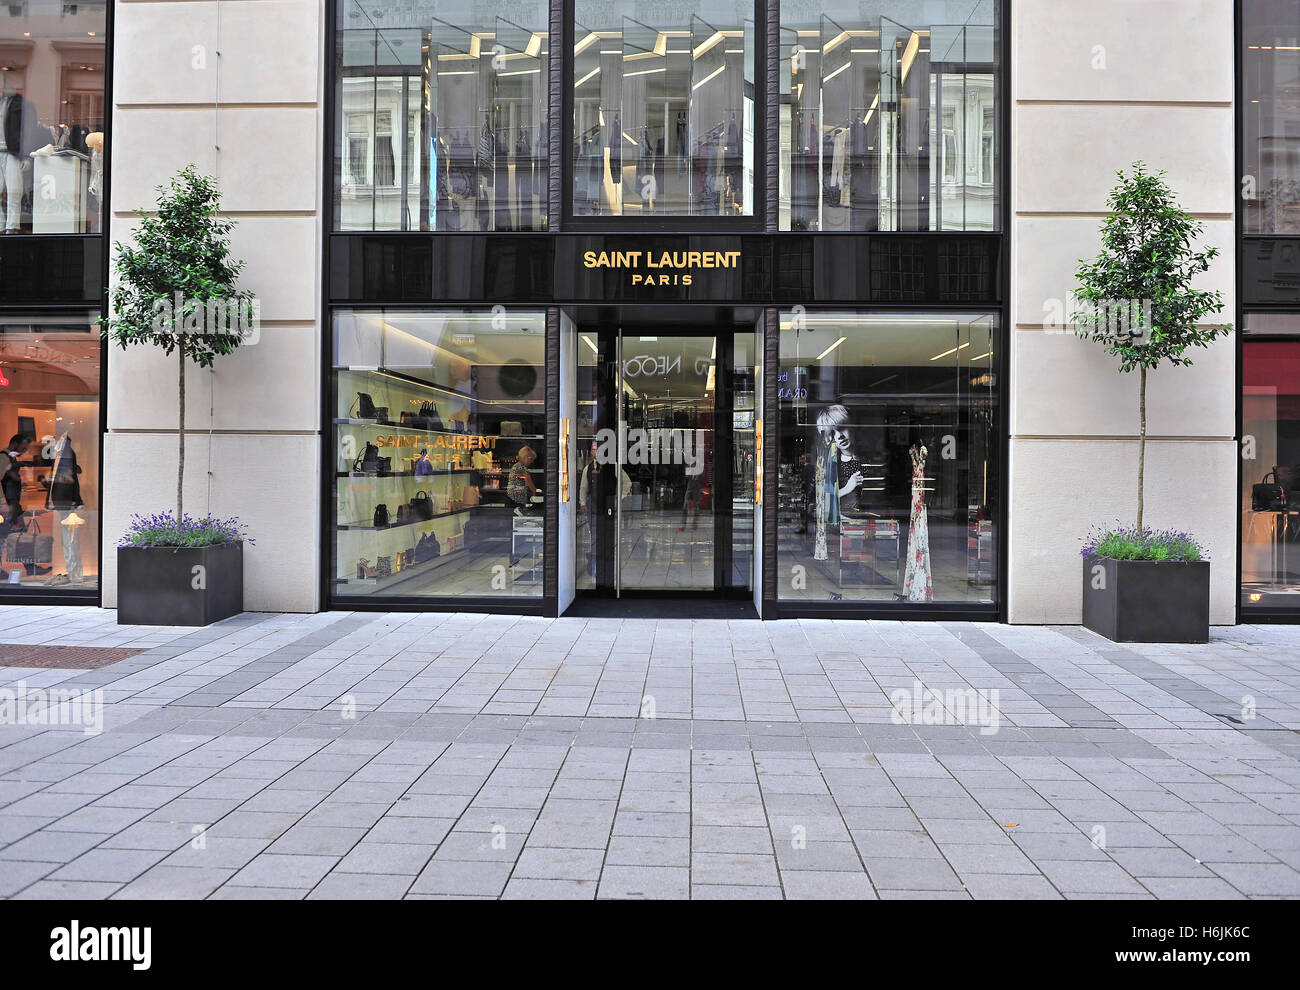 vienna austria june 6 saint laurent flagship front store in stock photo 124570724 alamy. Black Bedroom Furniture Sets. Home Design Ideas